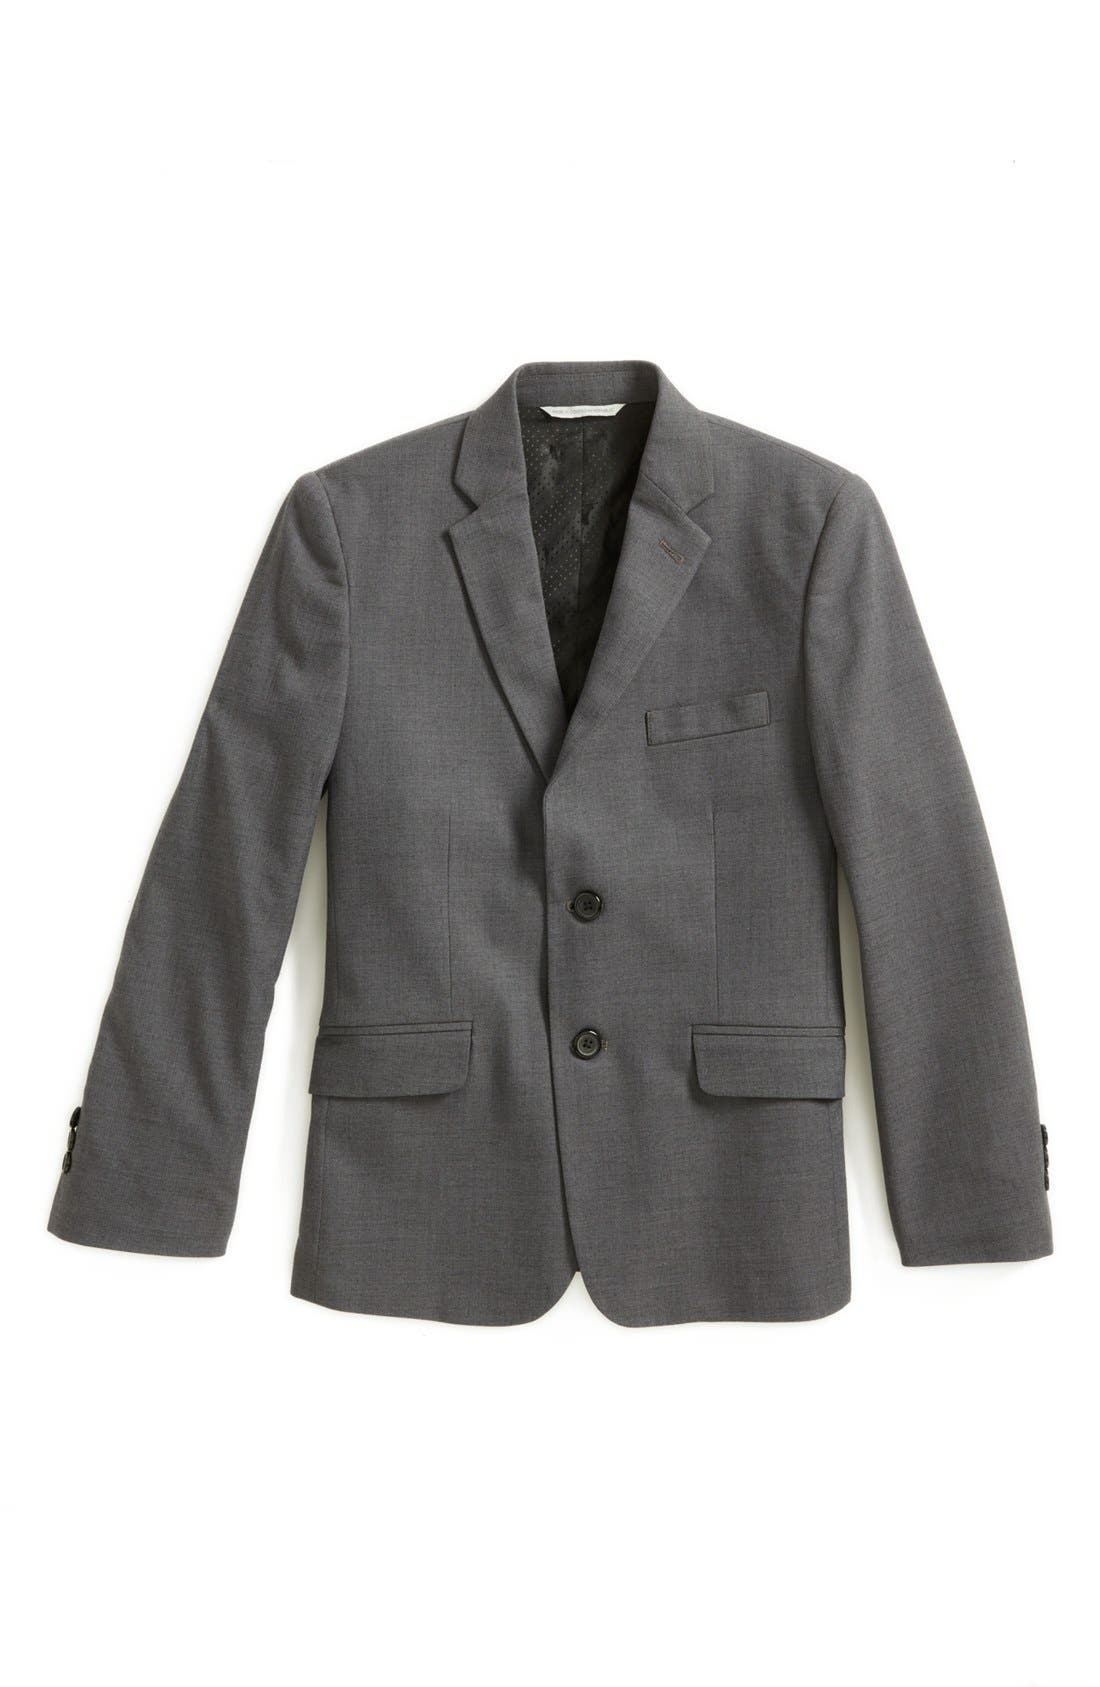 Alternate Image 1 Selected - C2 by Calibrate 'Caleb' Sharkskin Jacket (Big Boys)